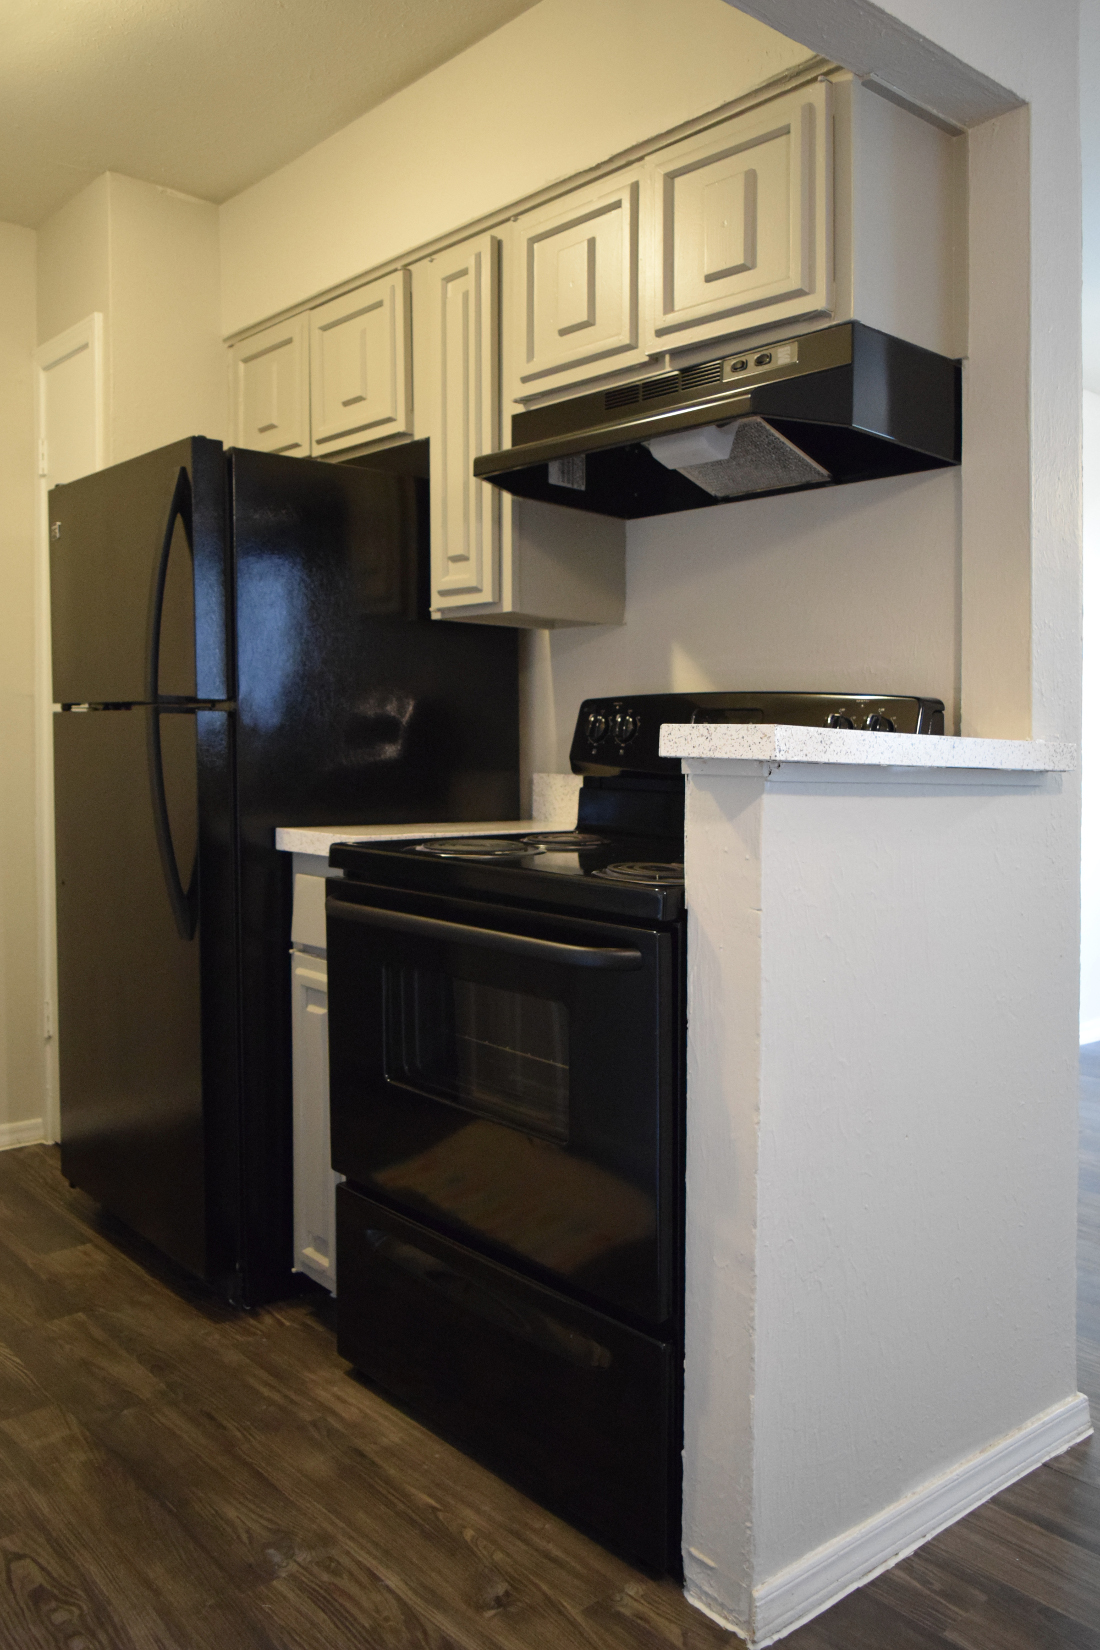 Black Kitchen Appliances at The Point on Redmond Apartments in College Station, TX